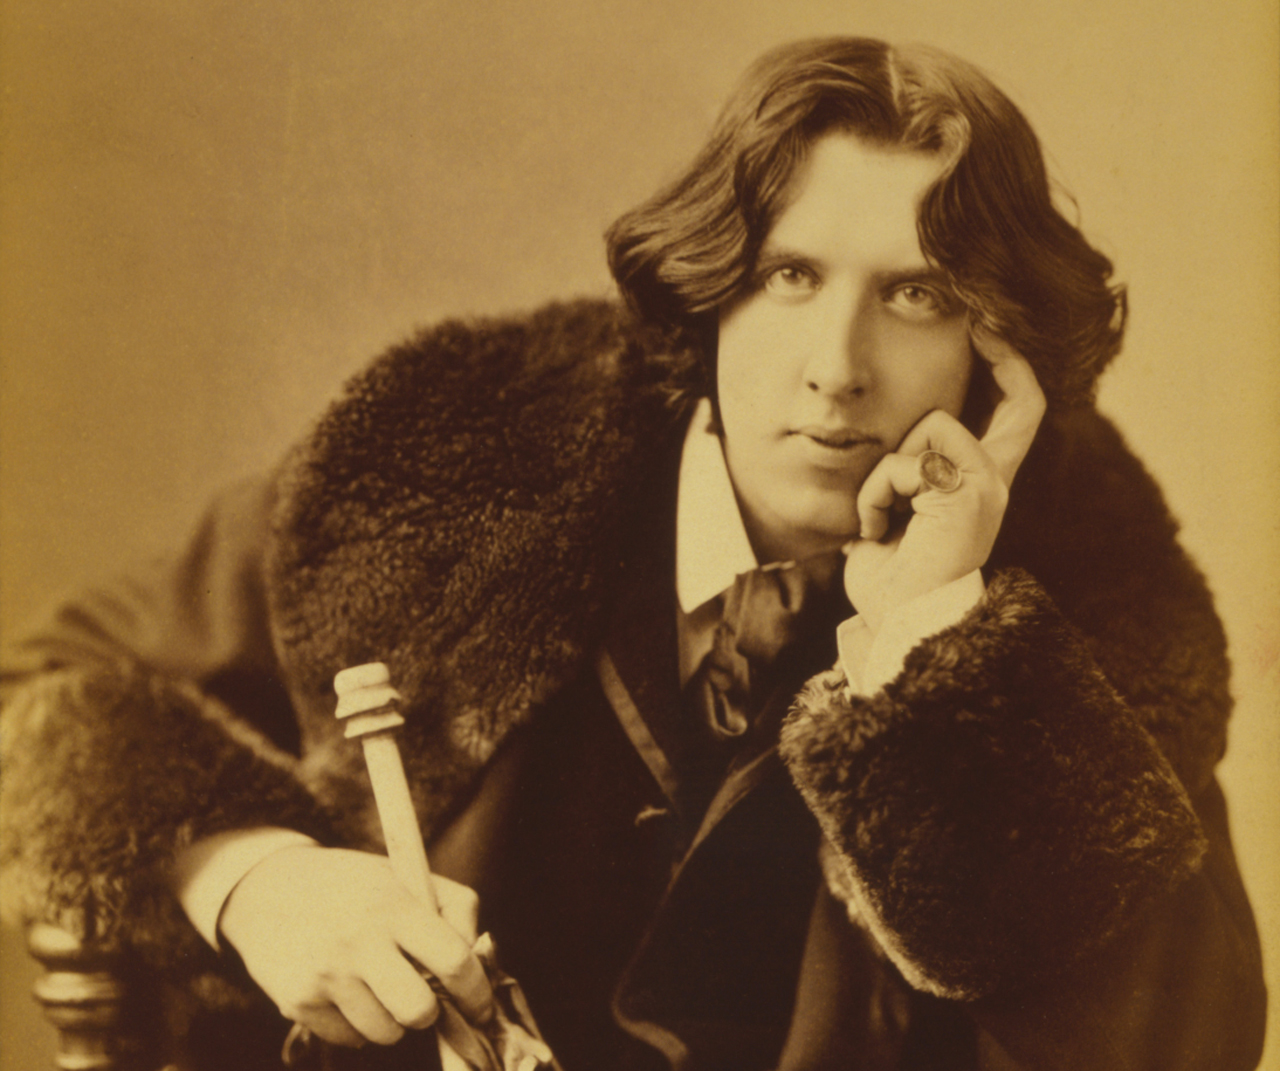 Oscar Wilde portrait by Napoleon Sarony, 1882, Photograph. Source: Wikimedia Commons